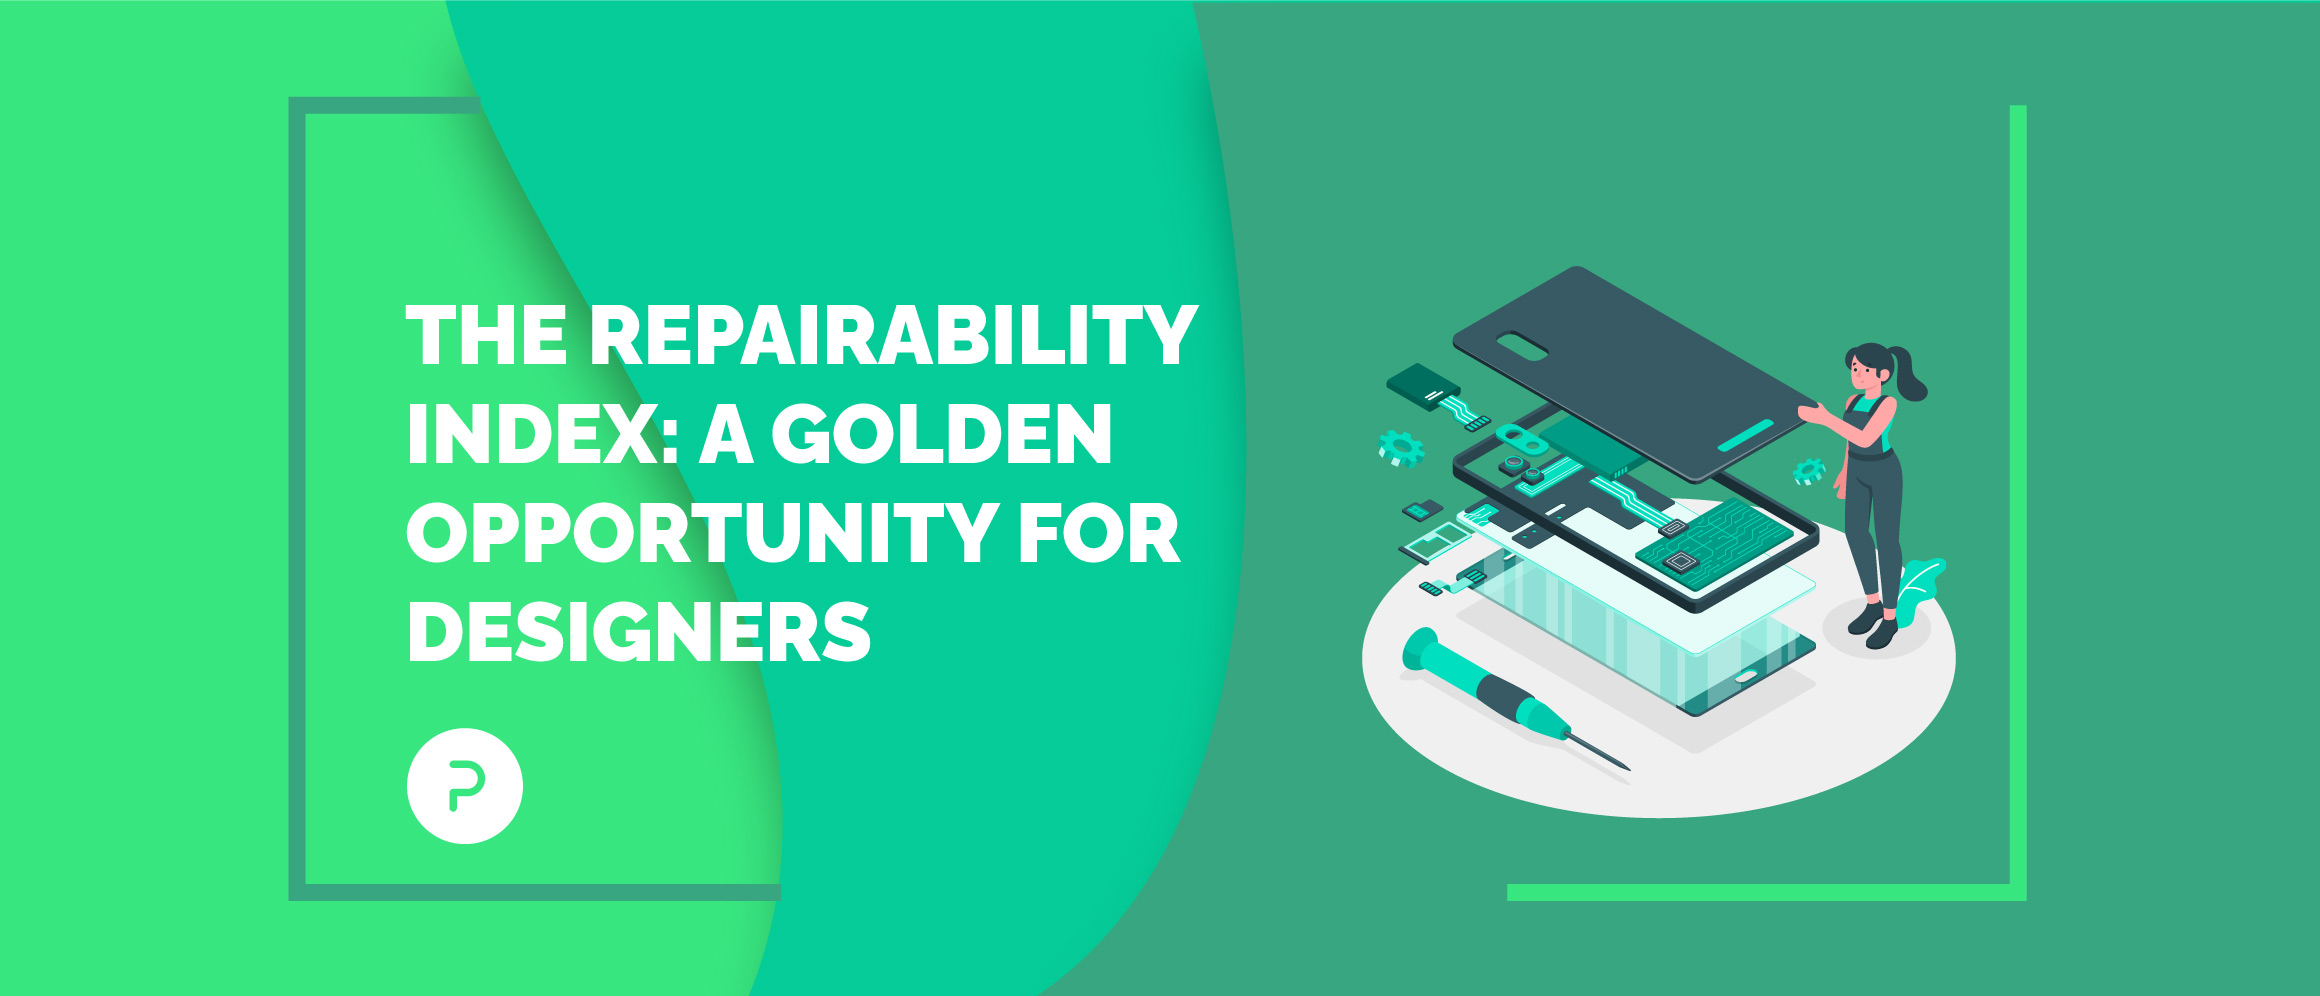 The Repairability Index: A golden opportunity for designers